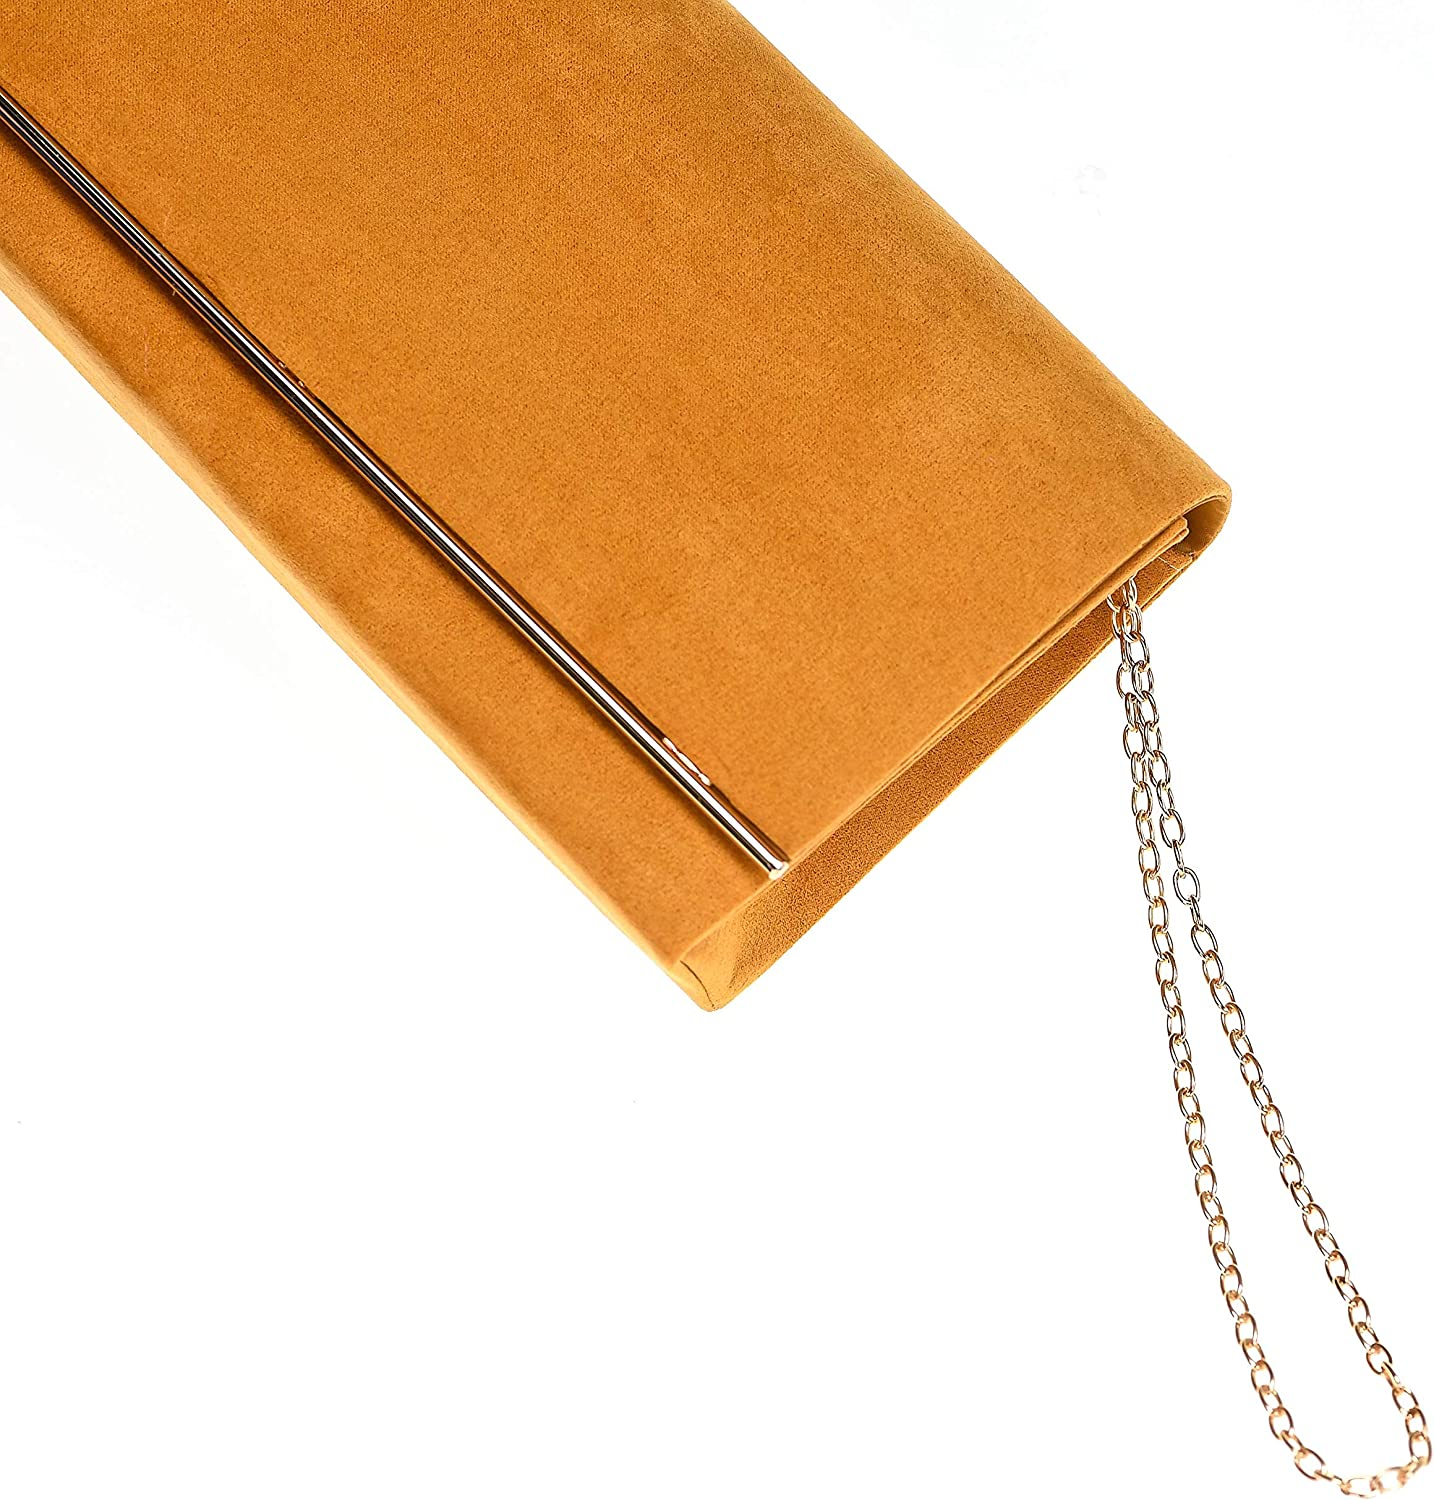 Beya Evening Bag Clutch Purse: Cute Style with Handle & Chain Strap